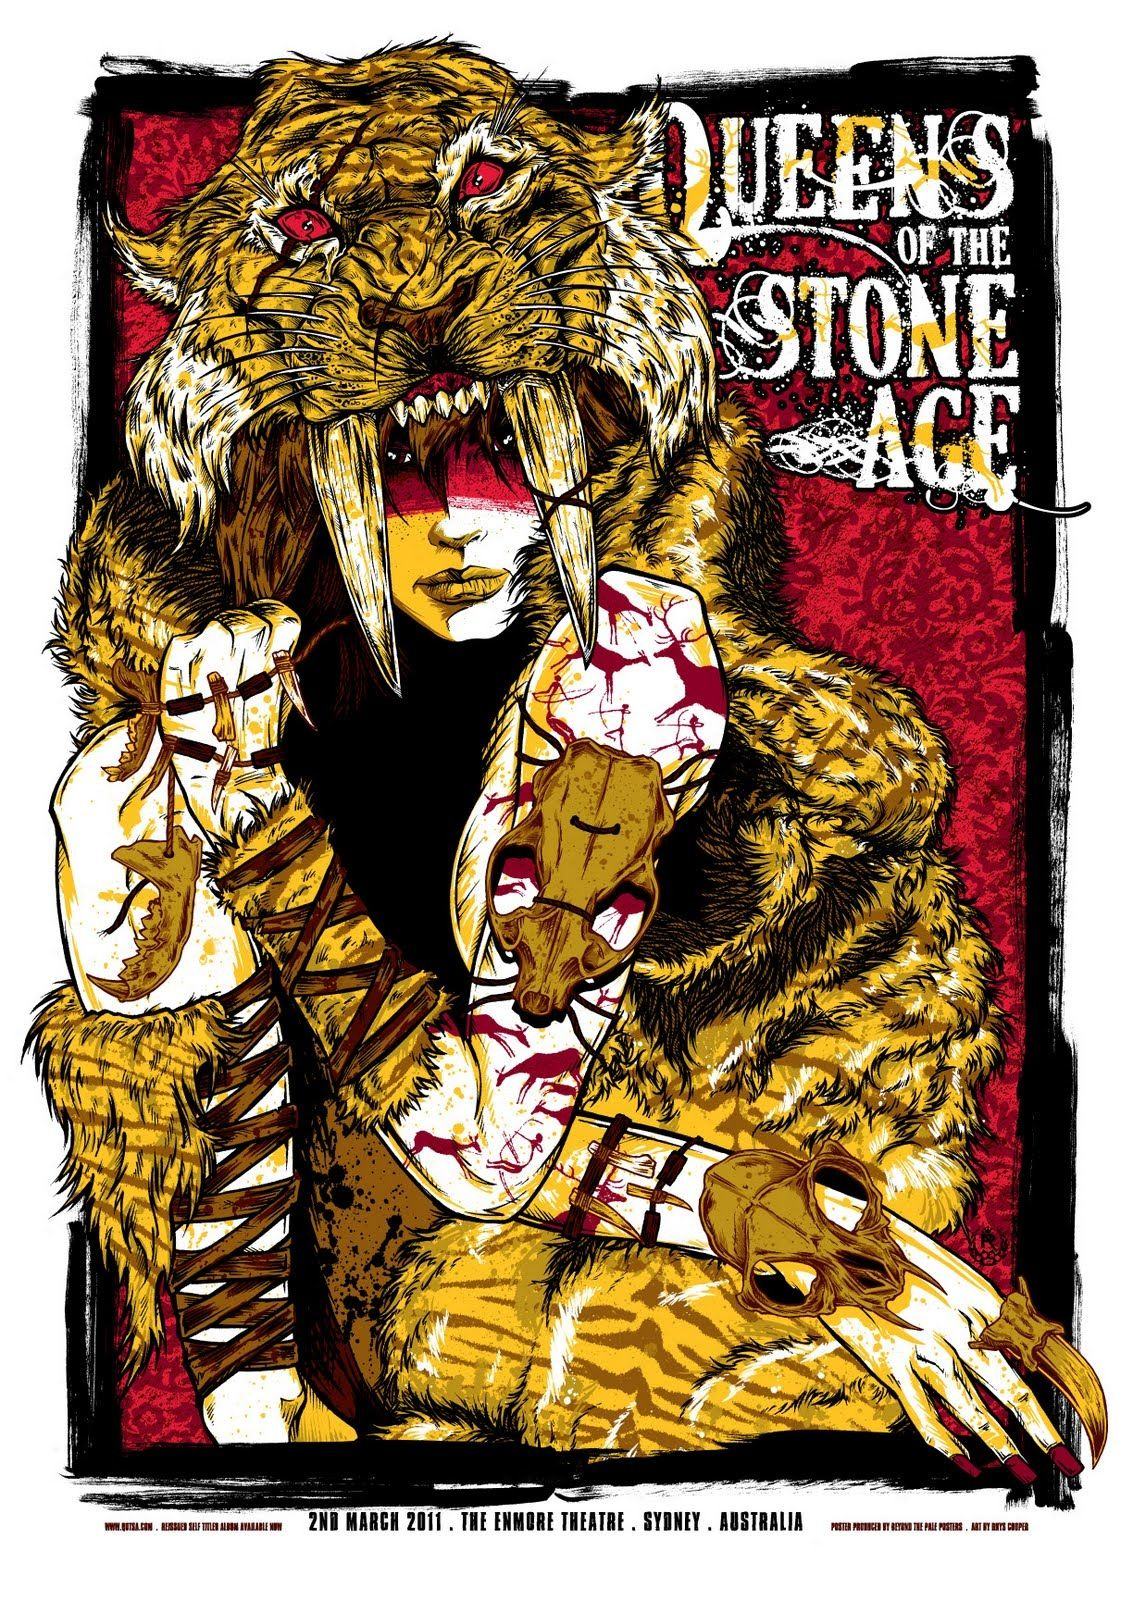 Concert: Queens of the Stone Age. Enmore theatre Sydney 2013.